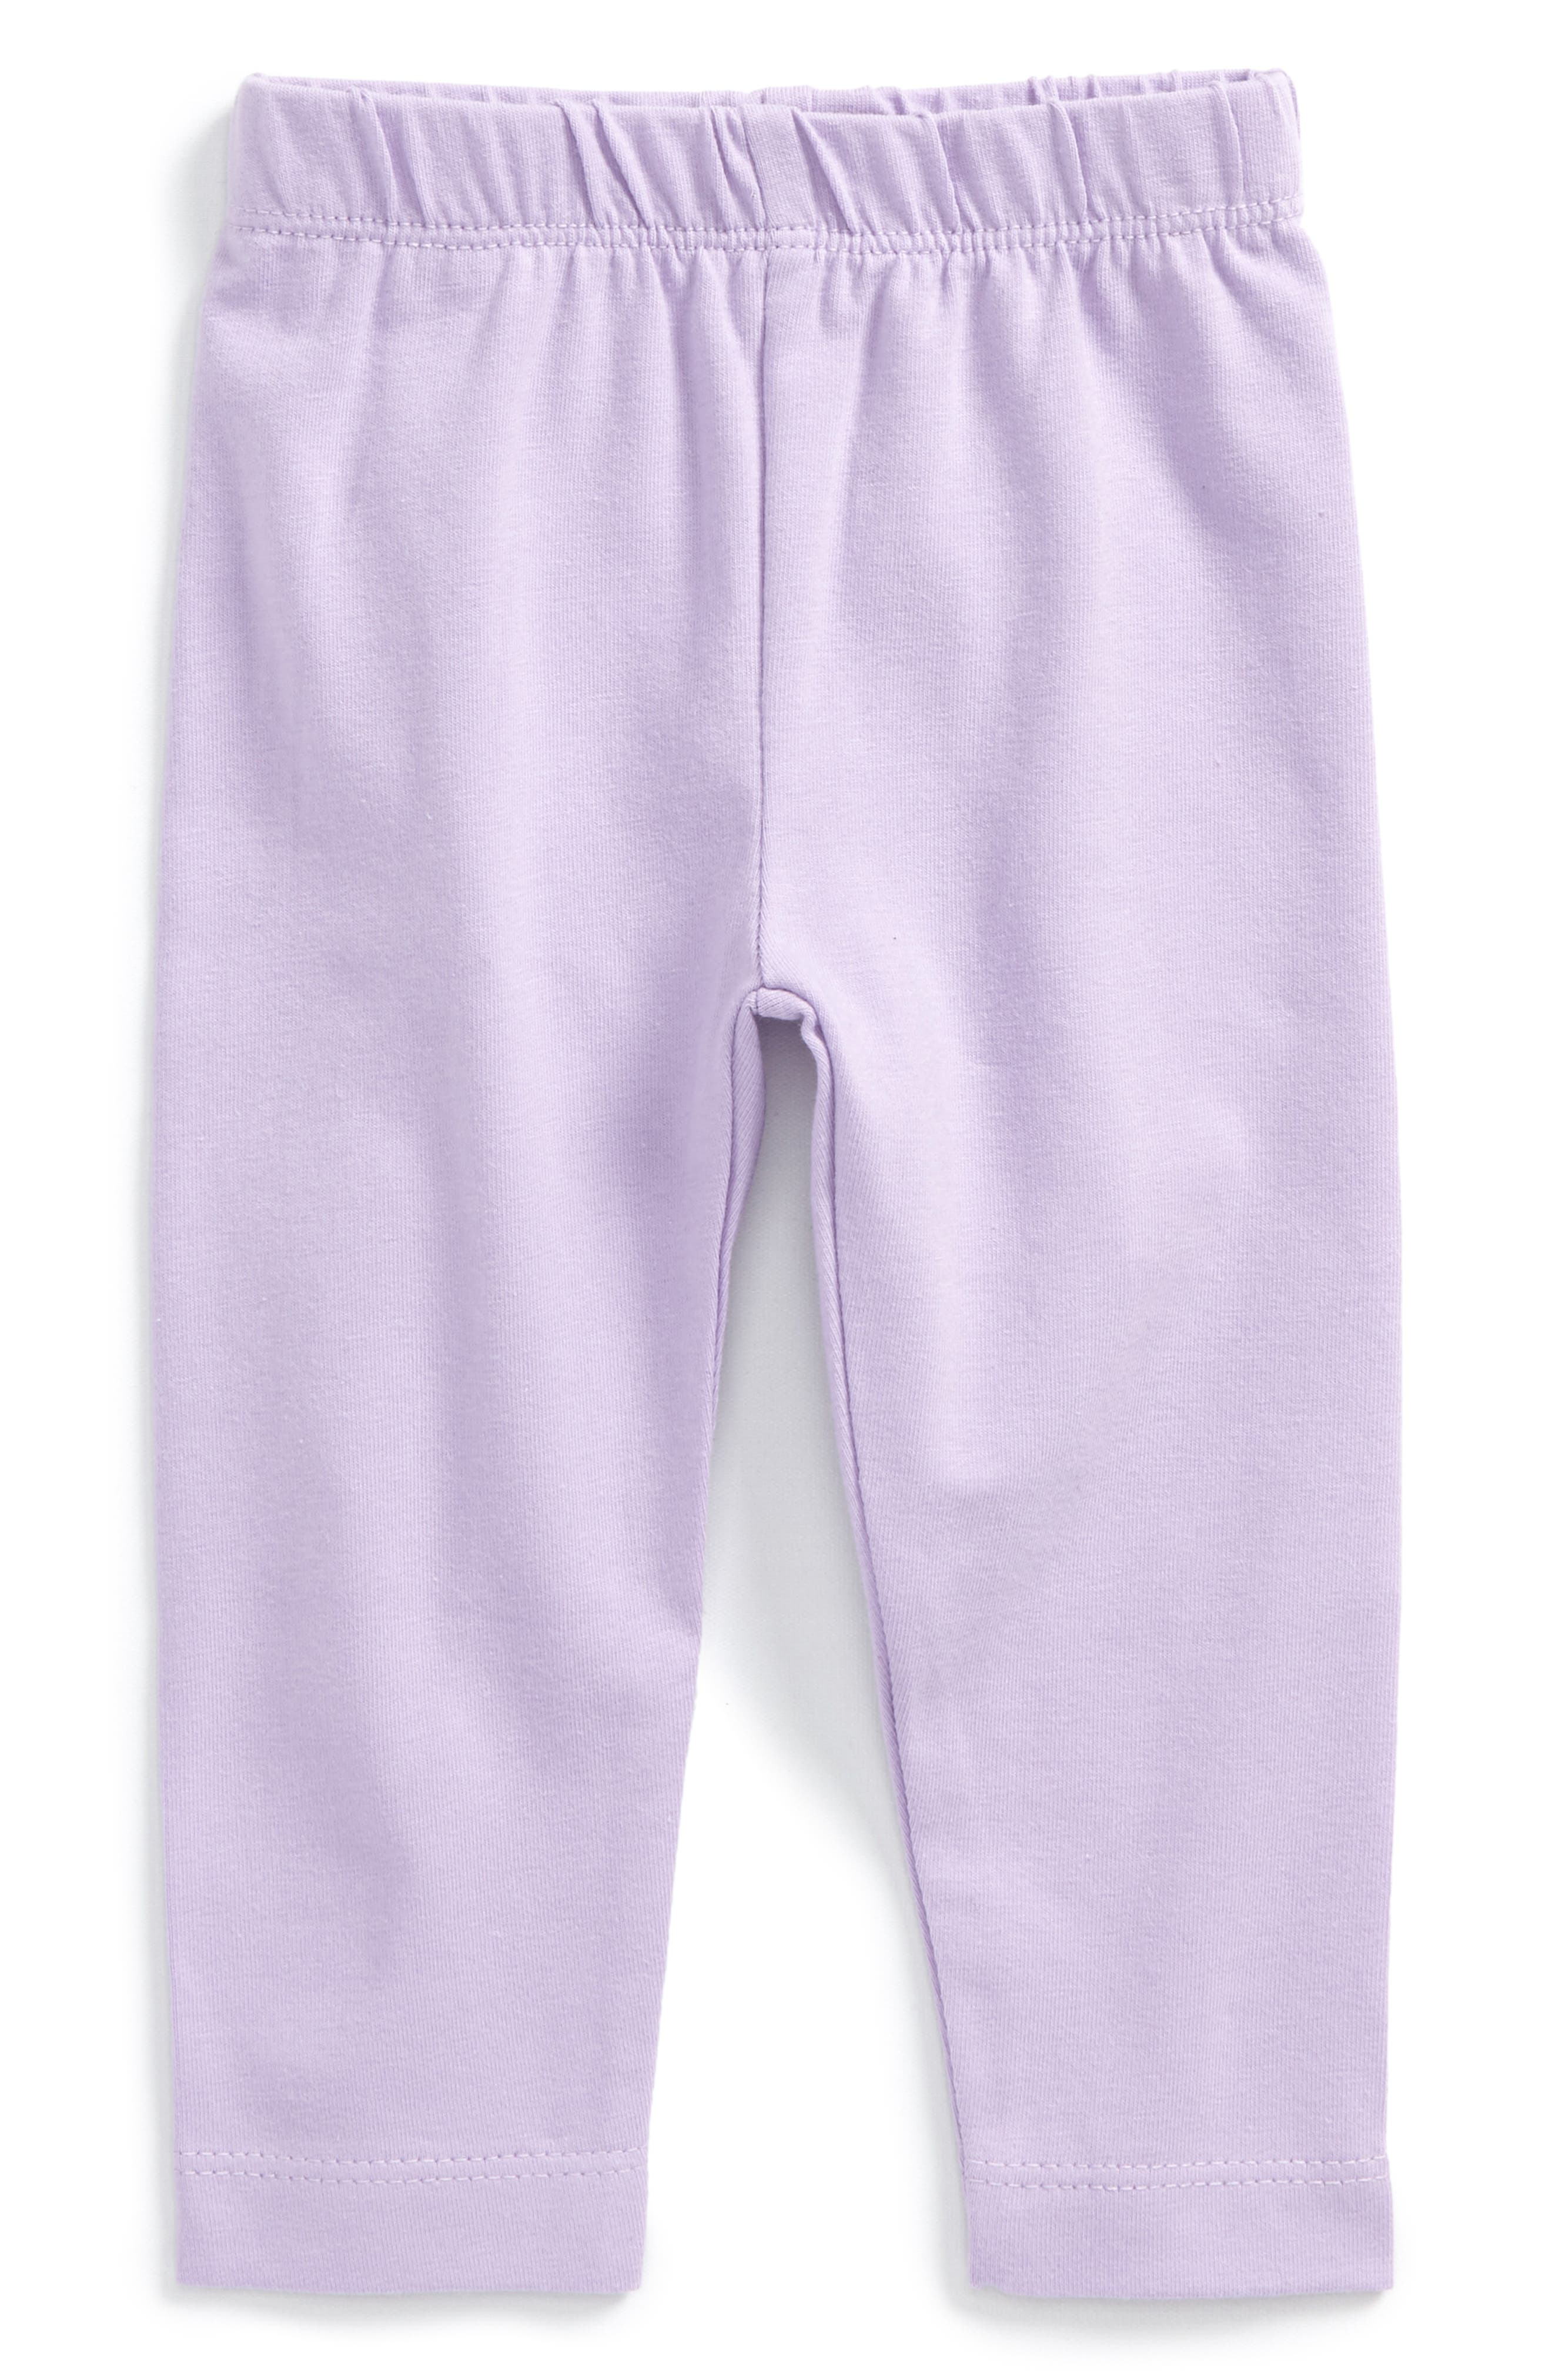 Stretch Leggings,                             Main thumbnail 1, color,                             Lilac